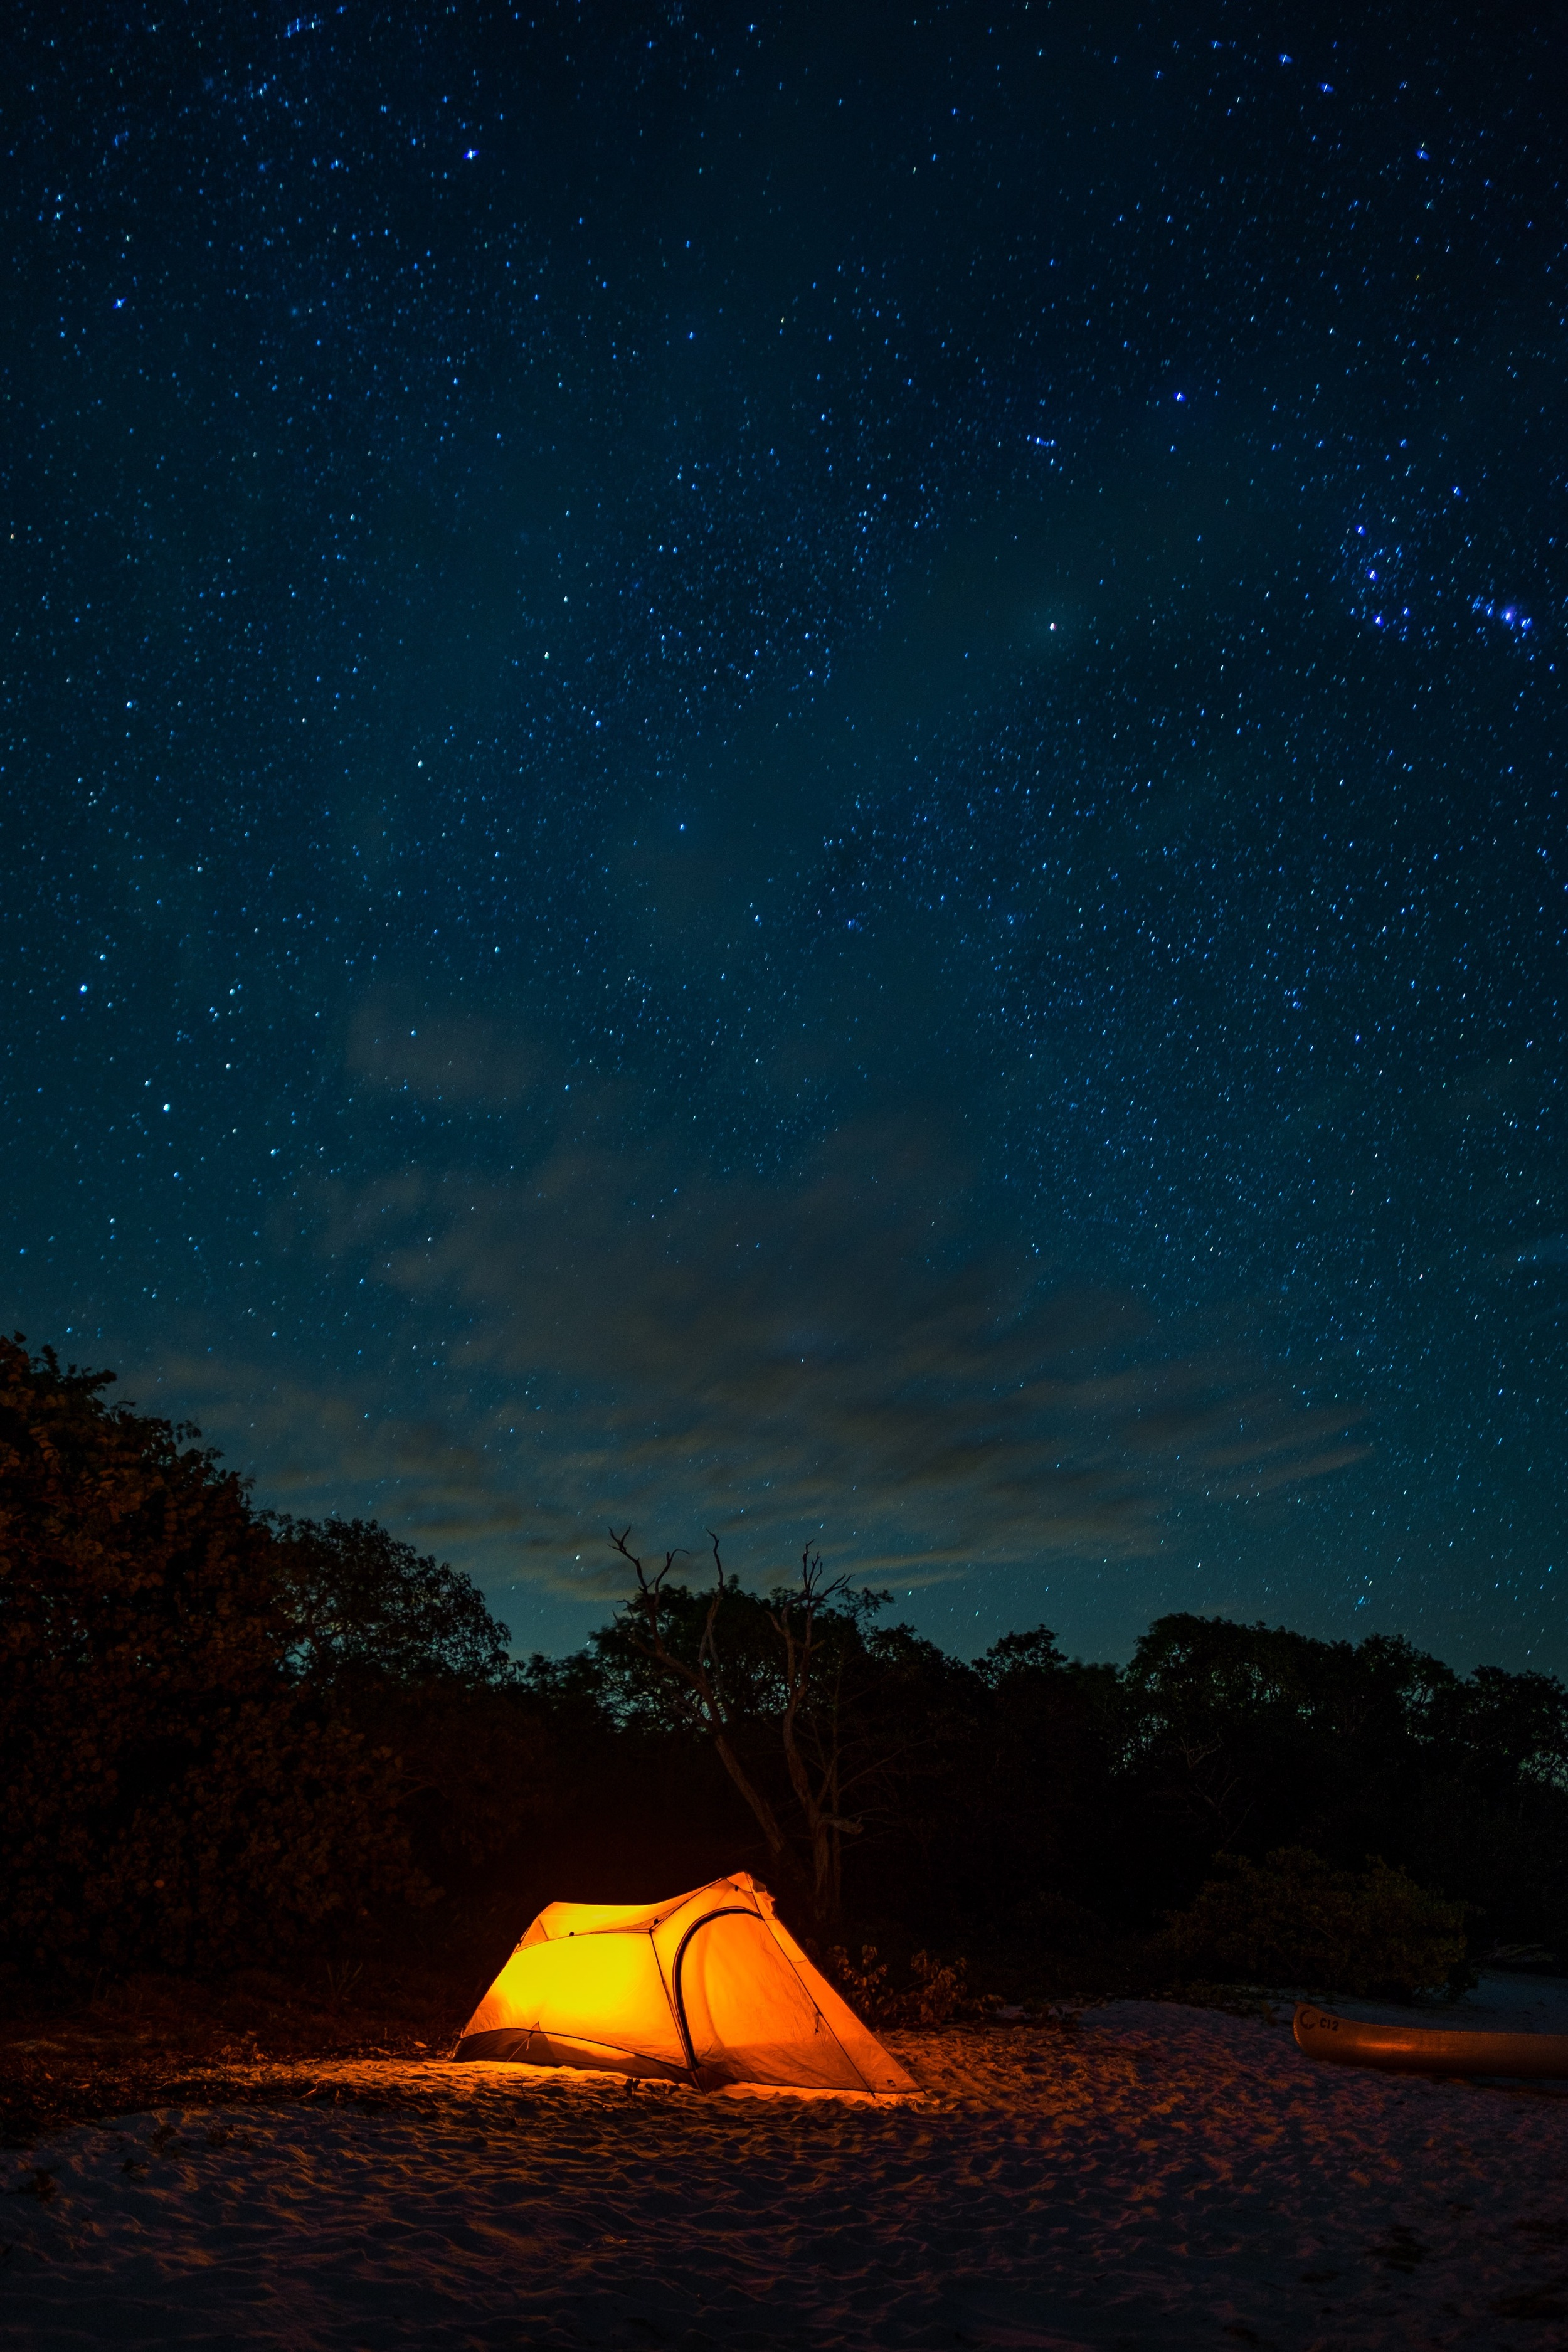 A starry night in Everglades National Park in Florida.